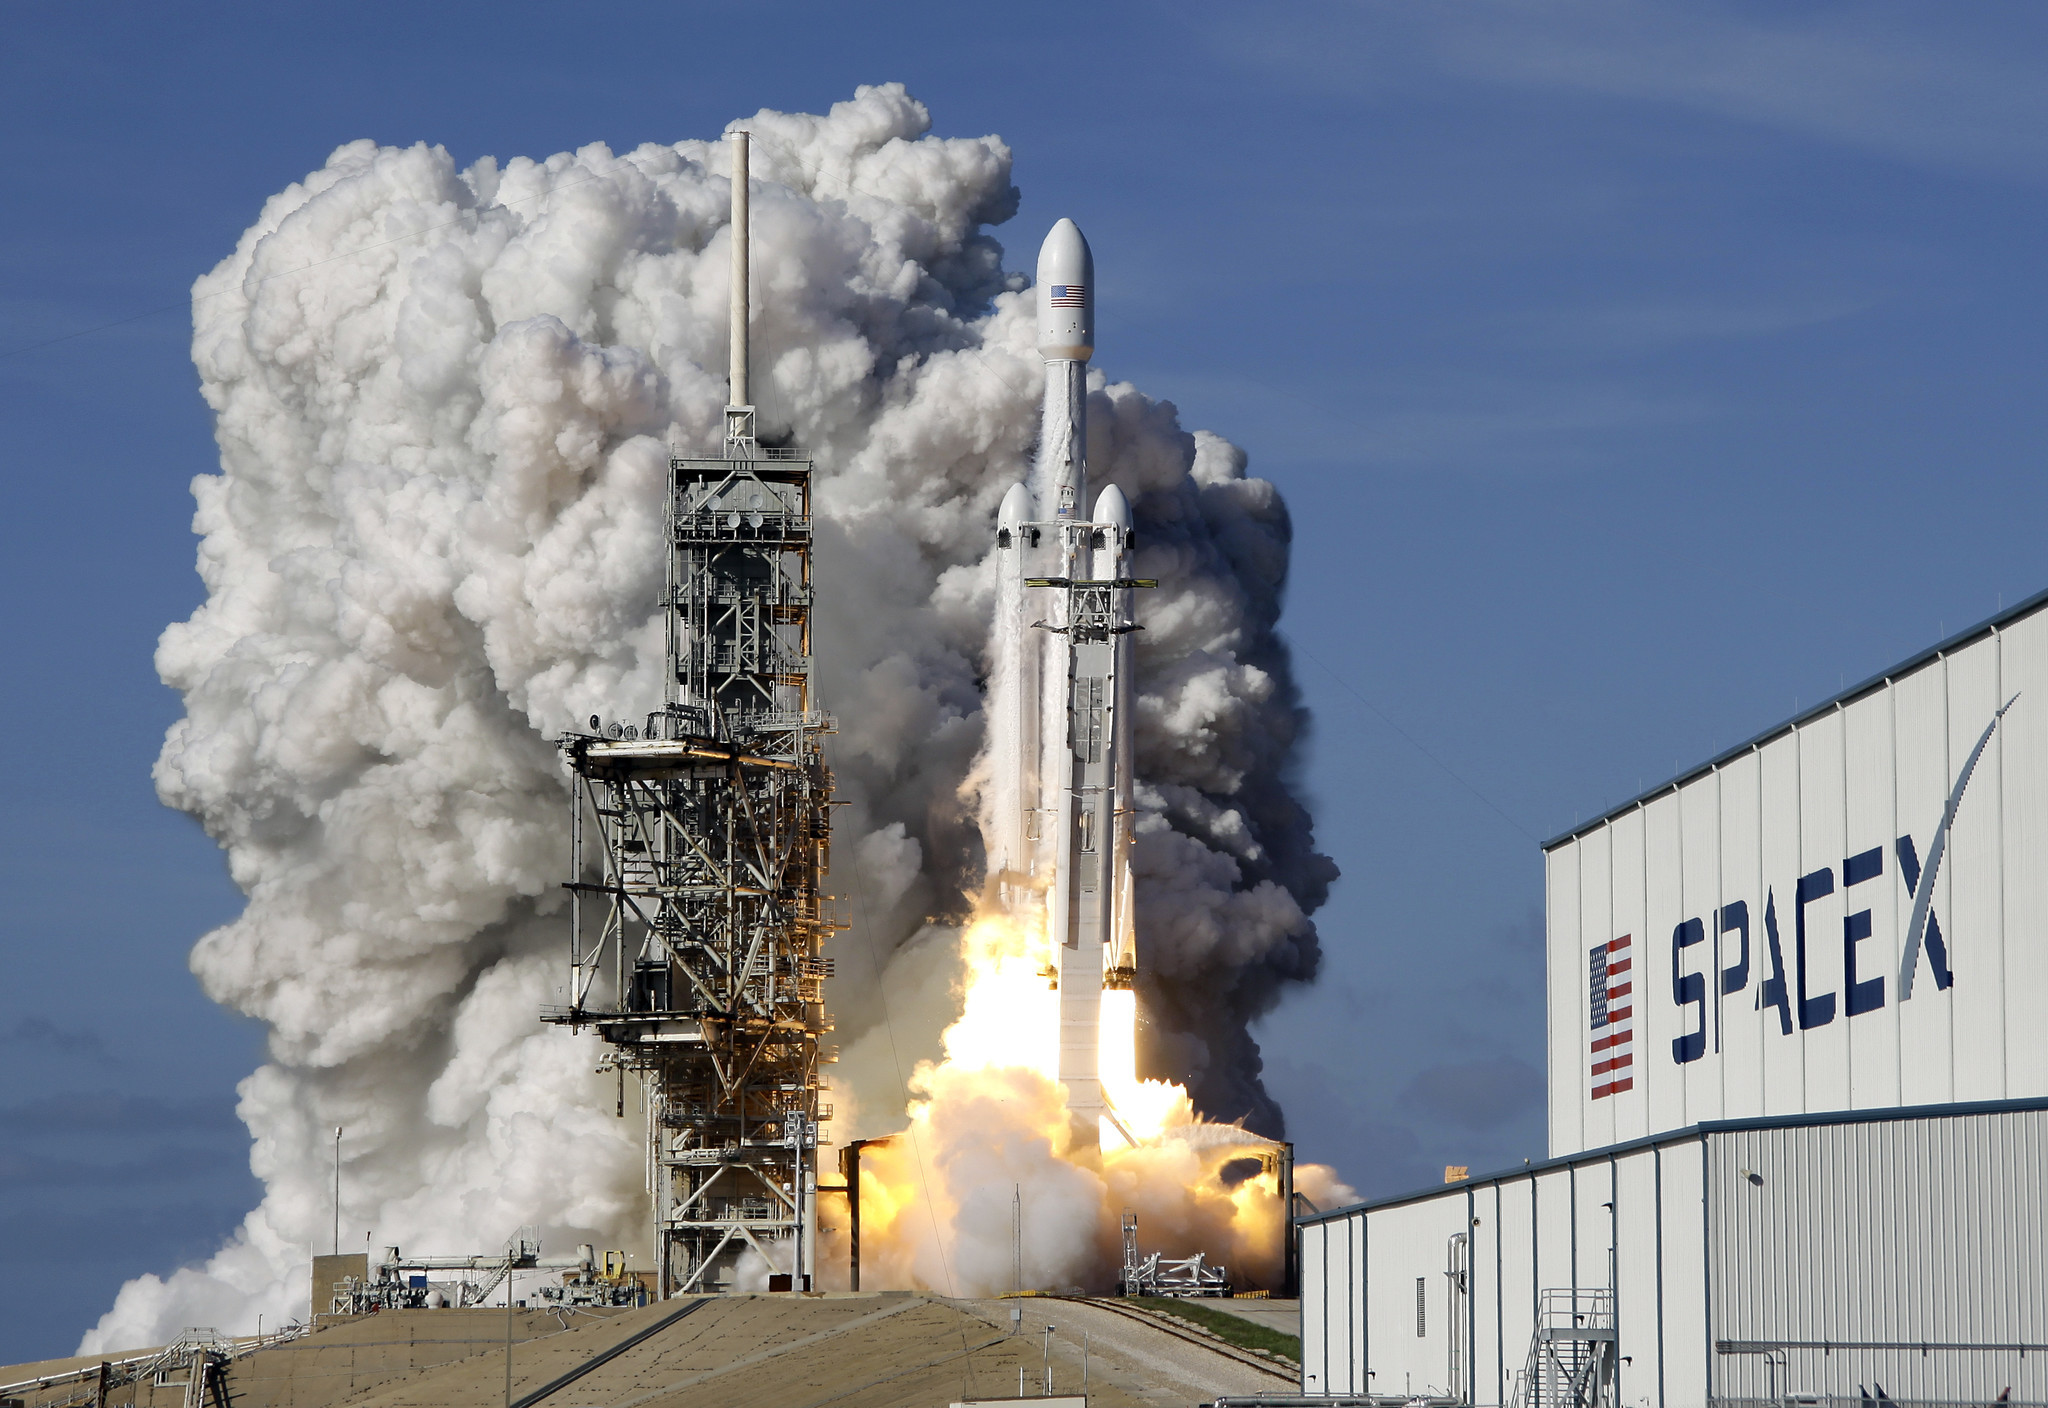 SpaceX's big new rocket blasts off, puts sports car in ...